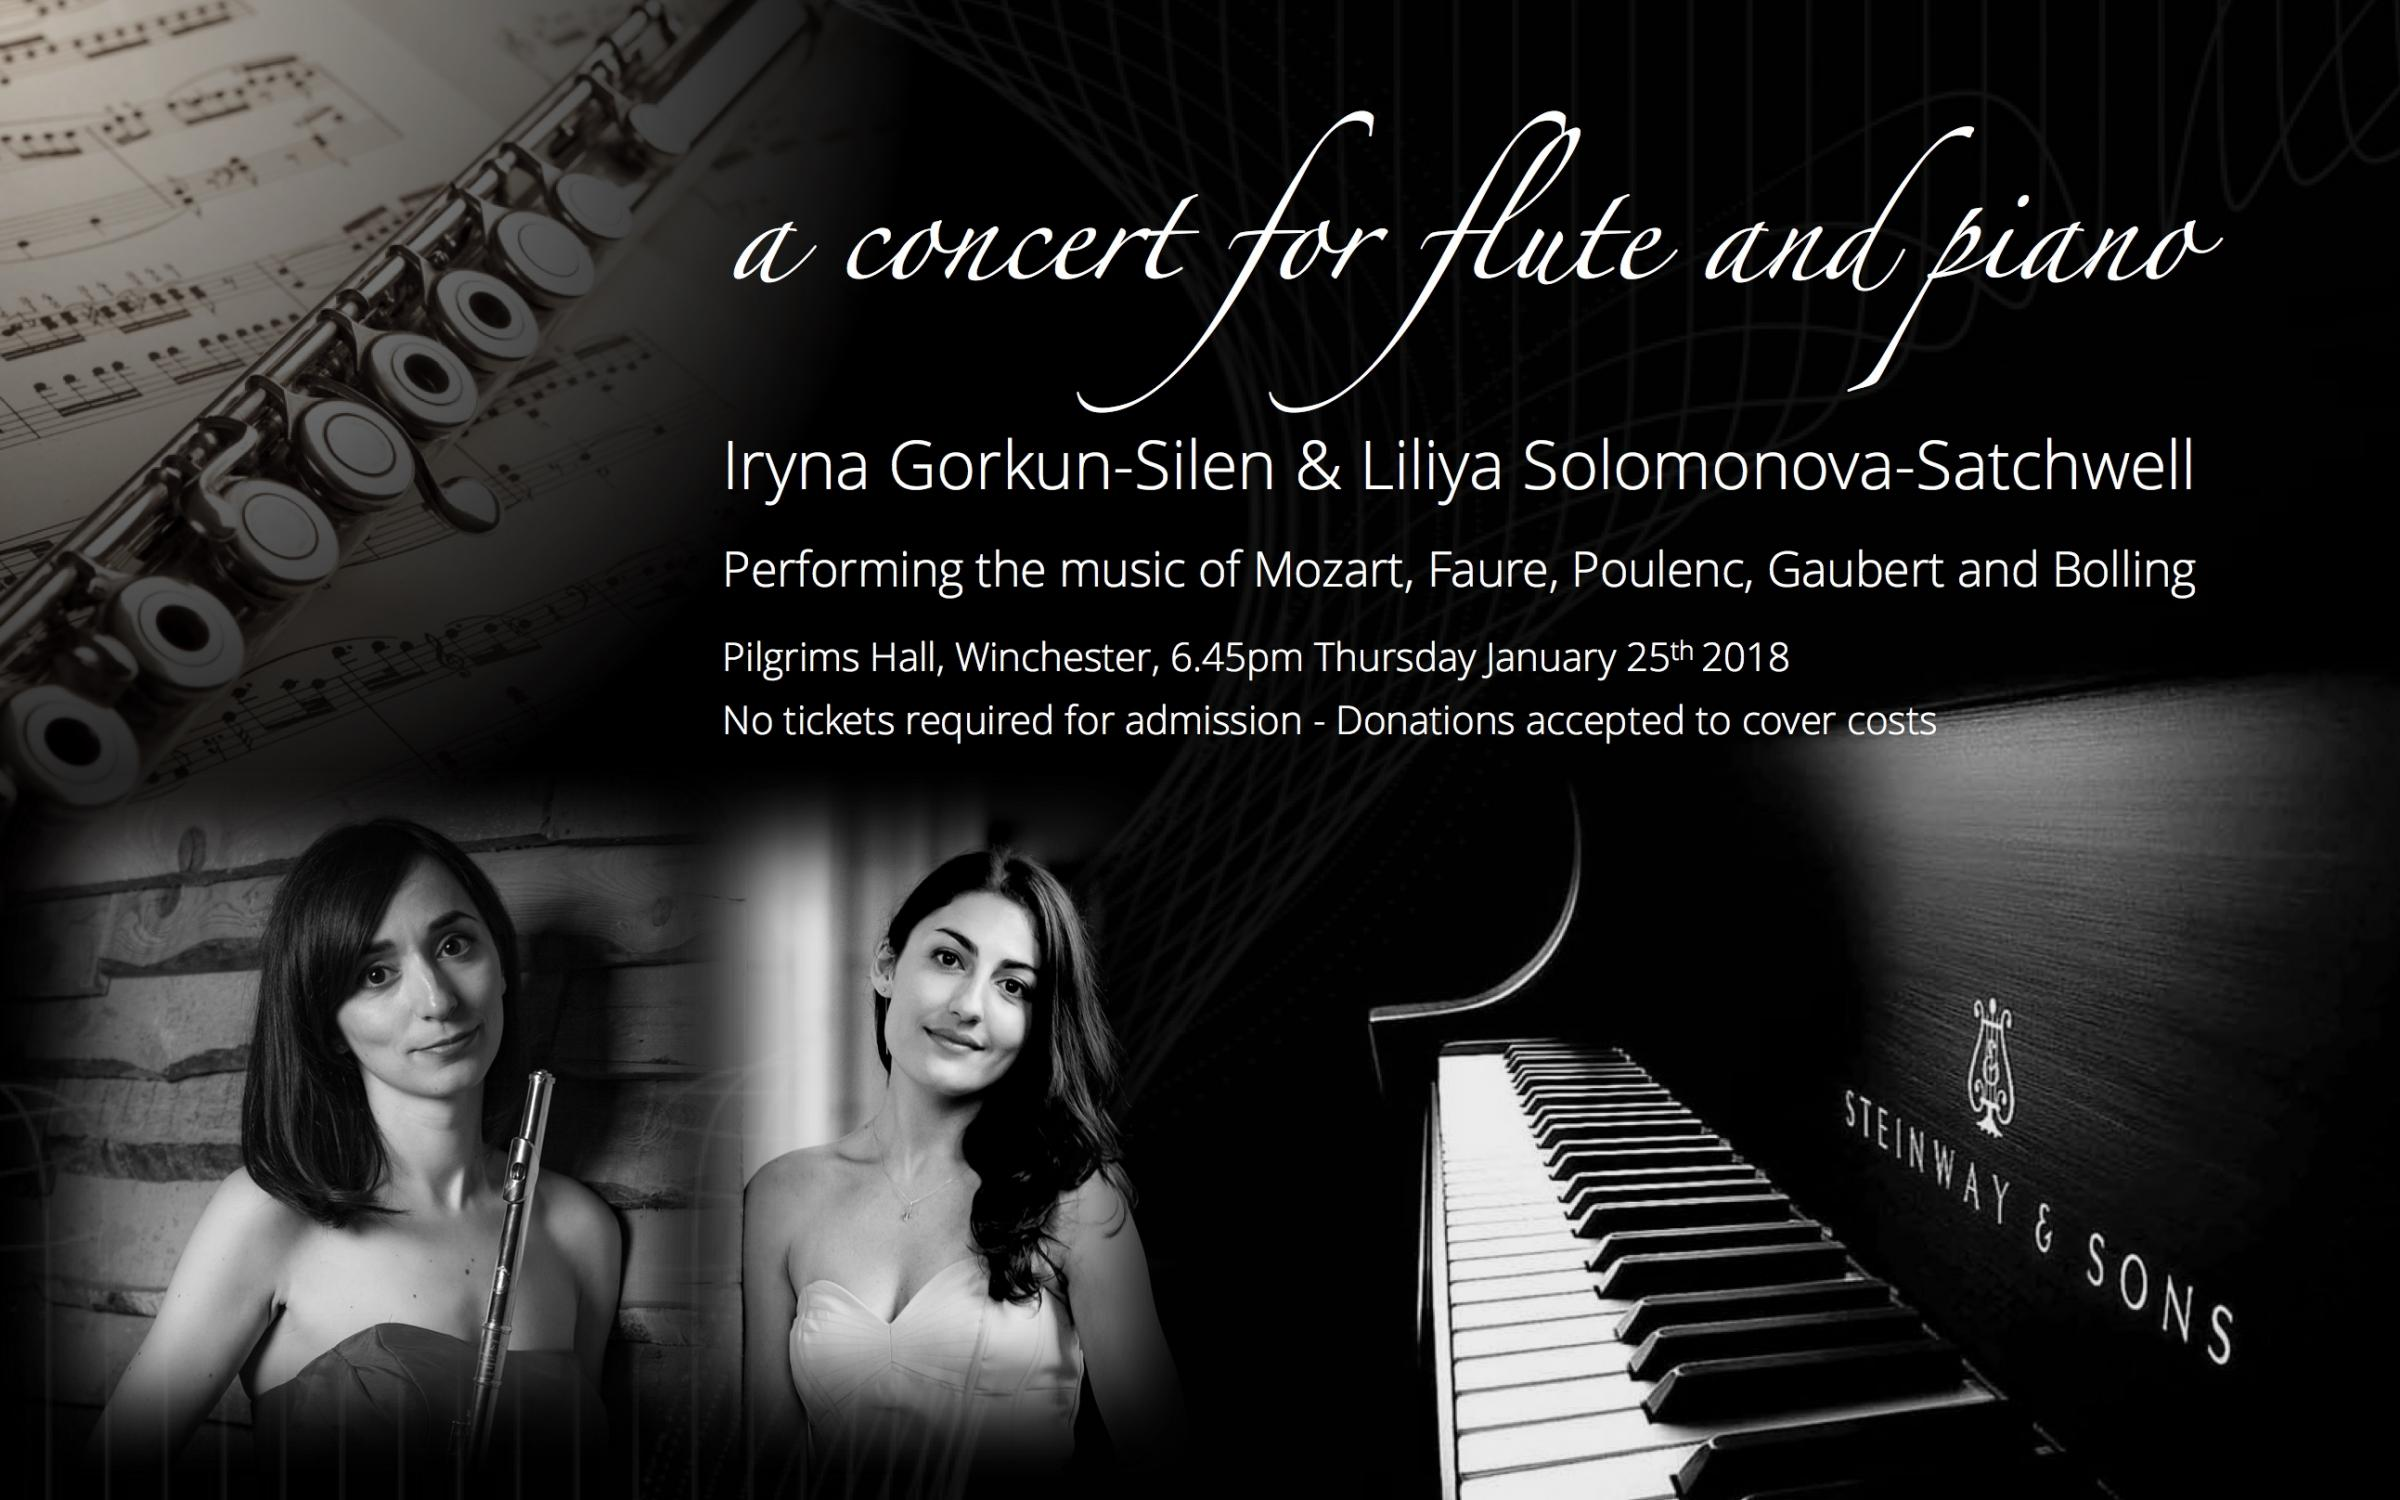 A concert for flute and piano